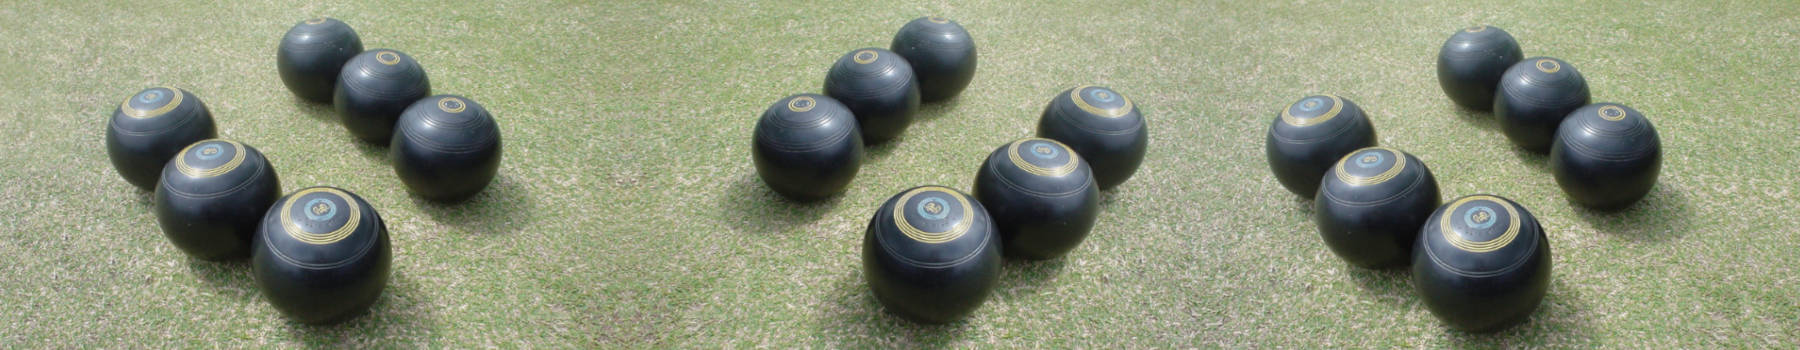 Lawn Bowls Trophies & Medals